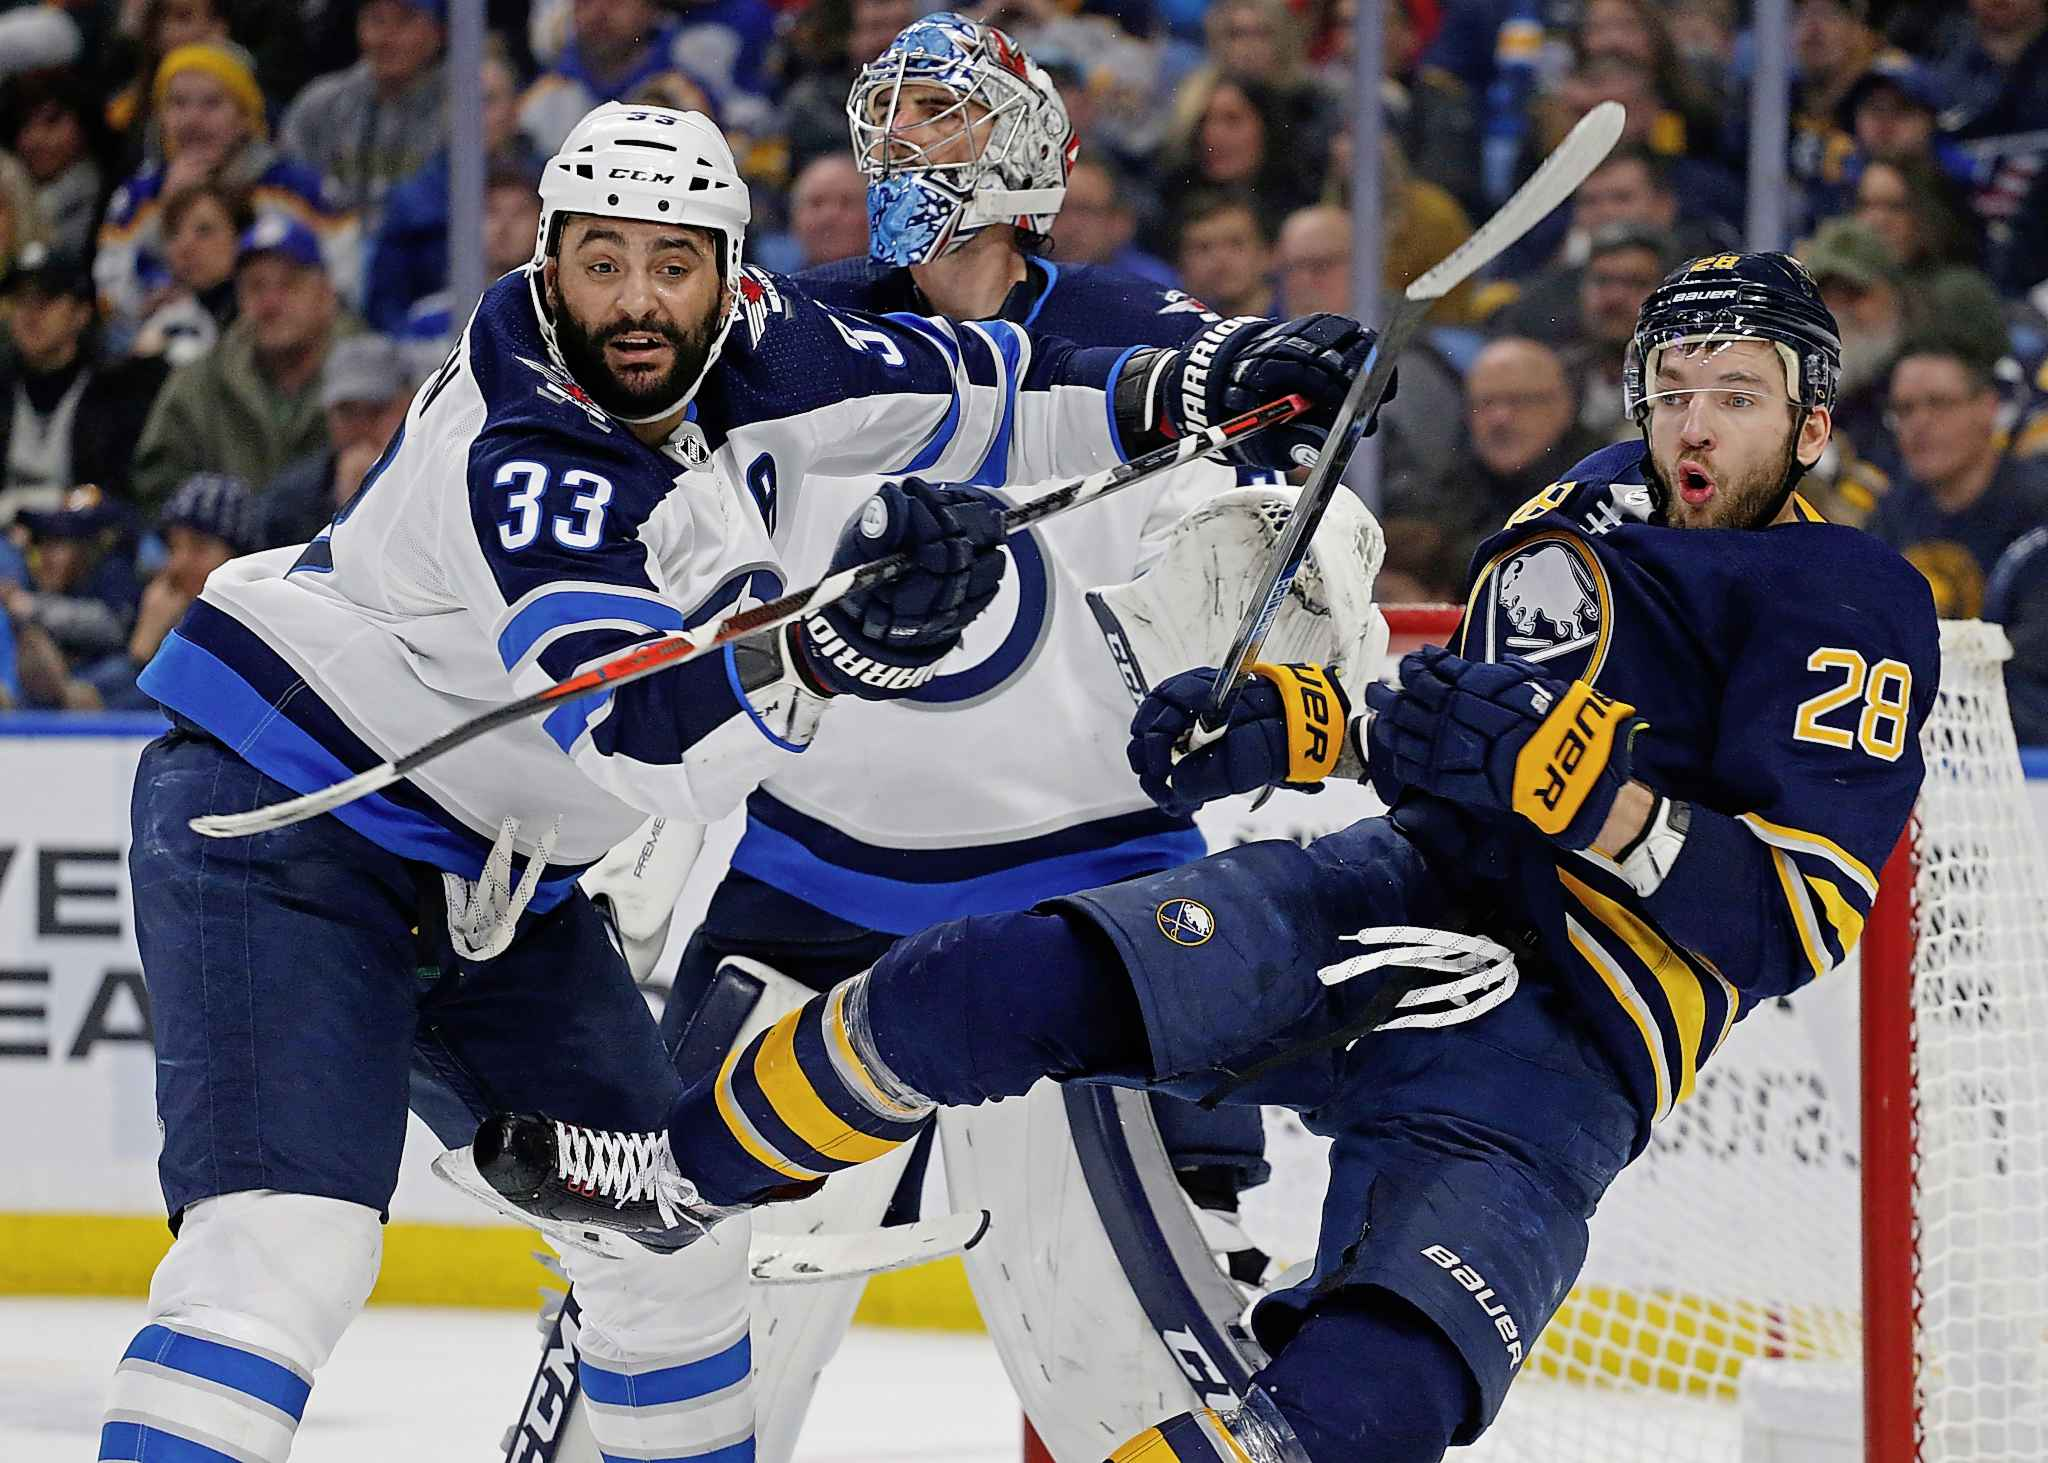 Byfuglien ruffs up Buffalo Sabres forward Zemgus Girgensons. Byfuglien had a unique combination of size, skill and sandpaper.